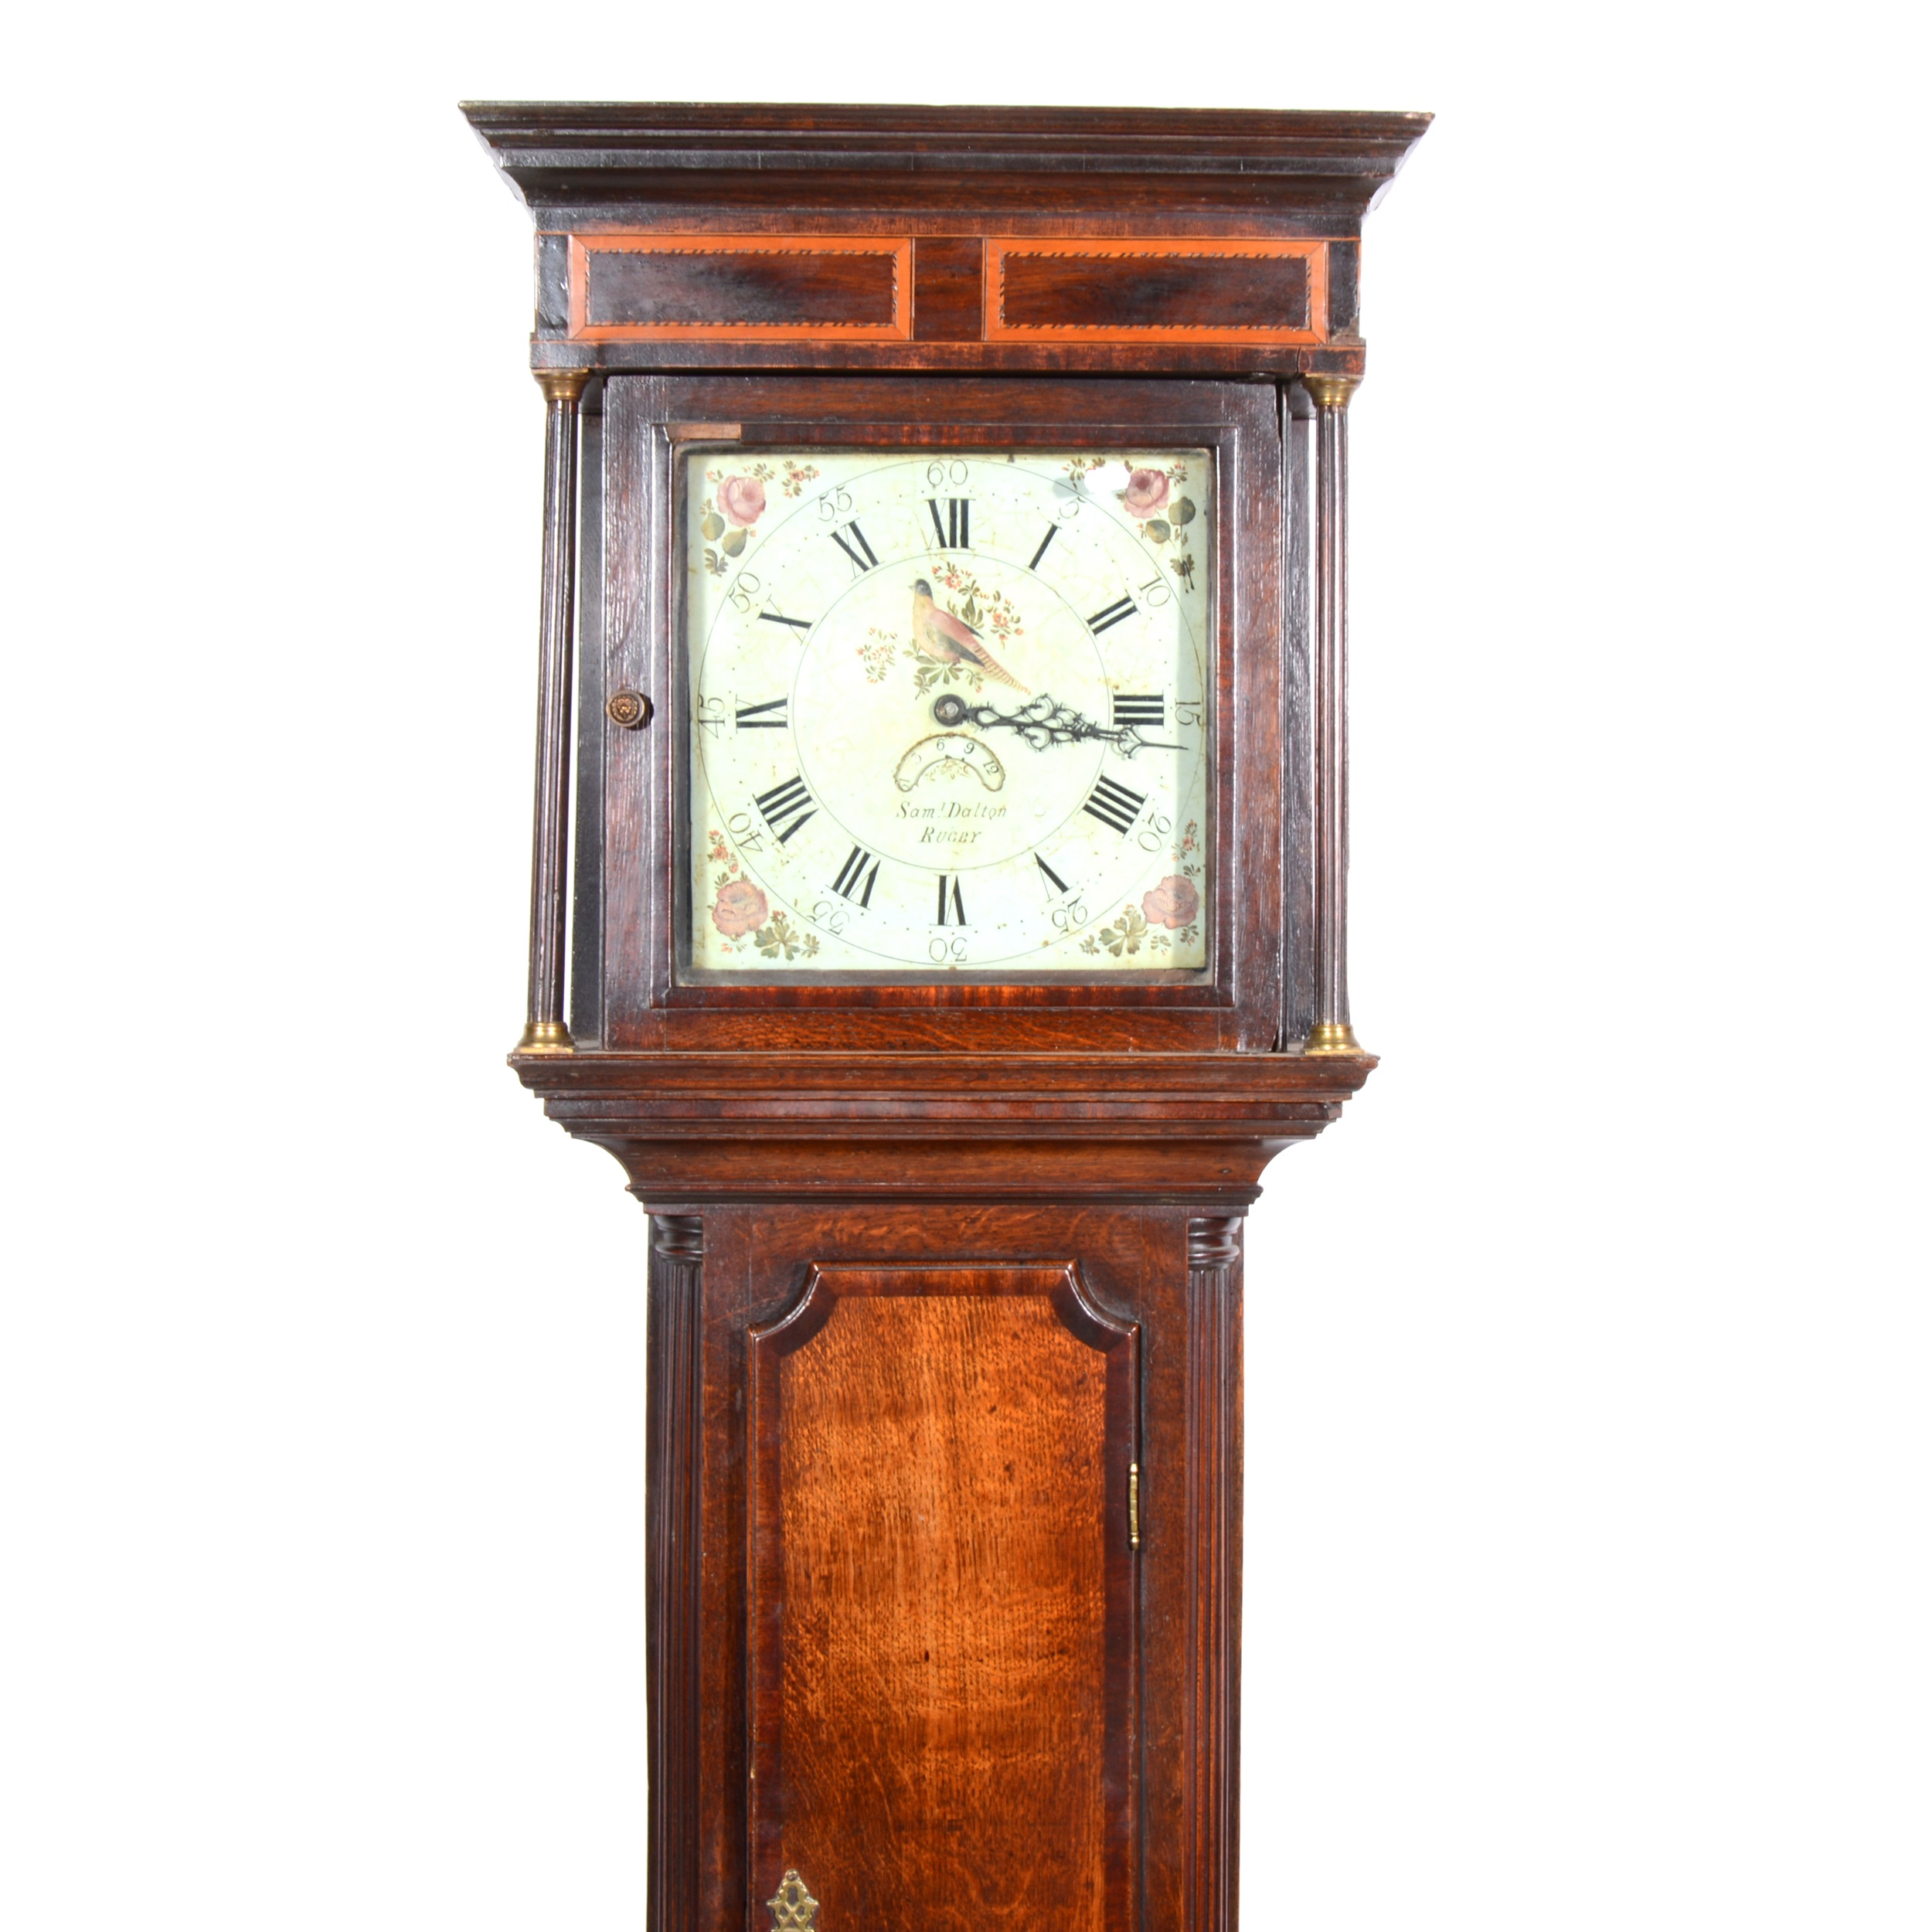 Lot 304 - Samuel Doulton, Rugby, oak longcase clock, thirty-hour movement